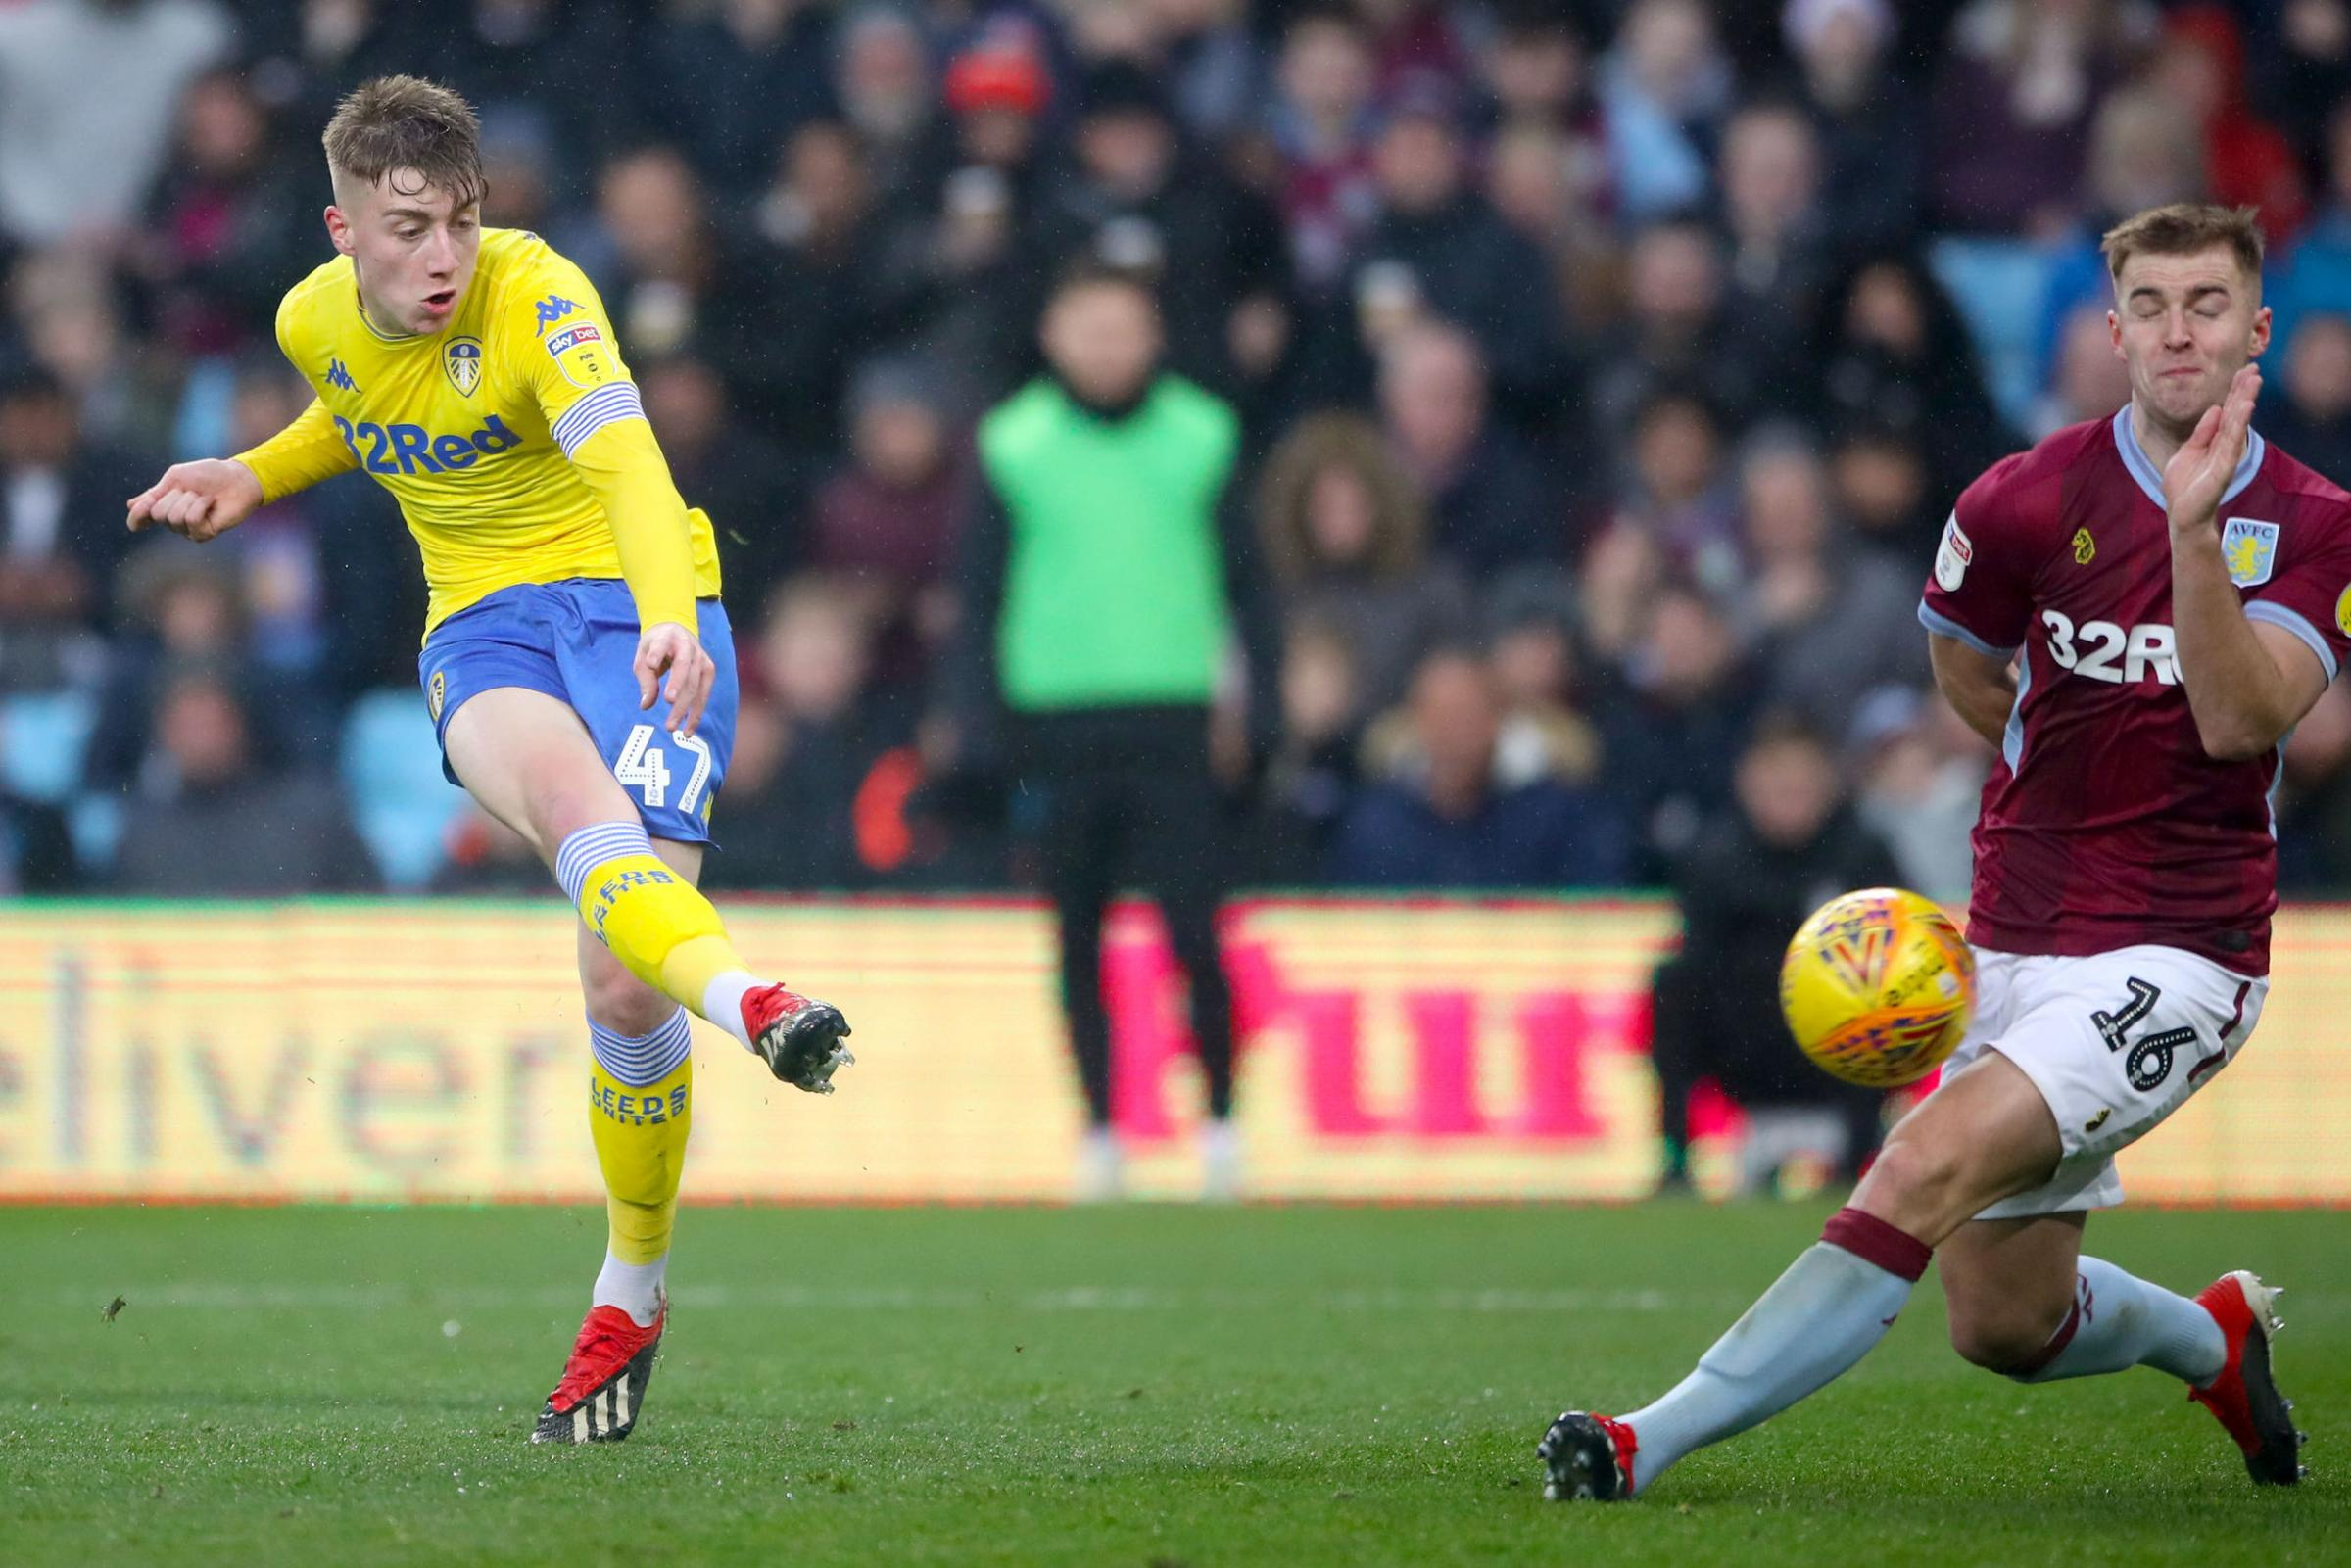 Report claiming Cherries' interest in Leeds star Jack Clarke understood to be wide of the mark